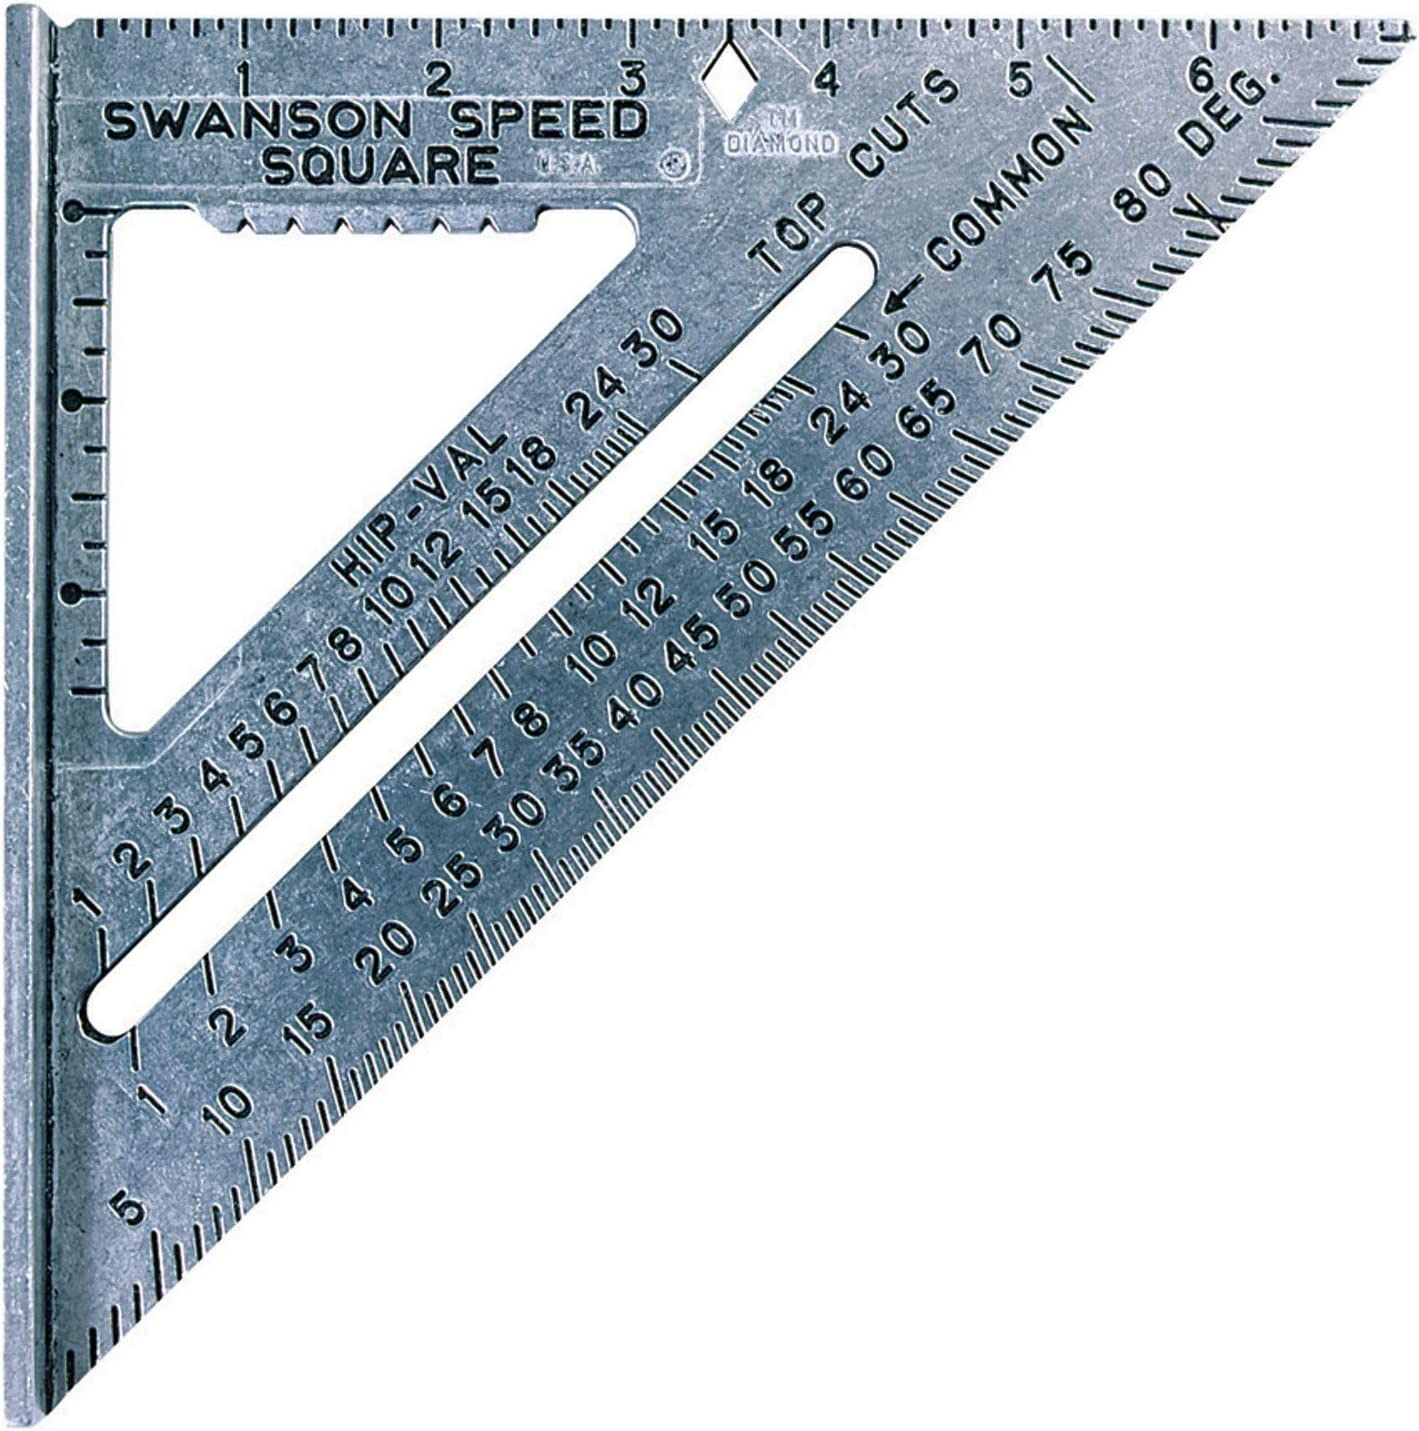 Swanson  7.25 in L x .875 in H Aluminum  Speed Square  Silver